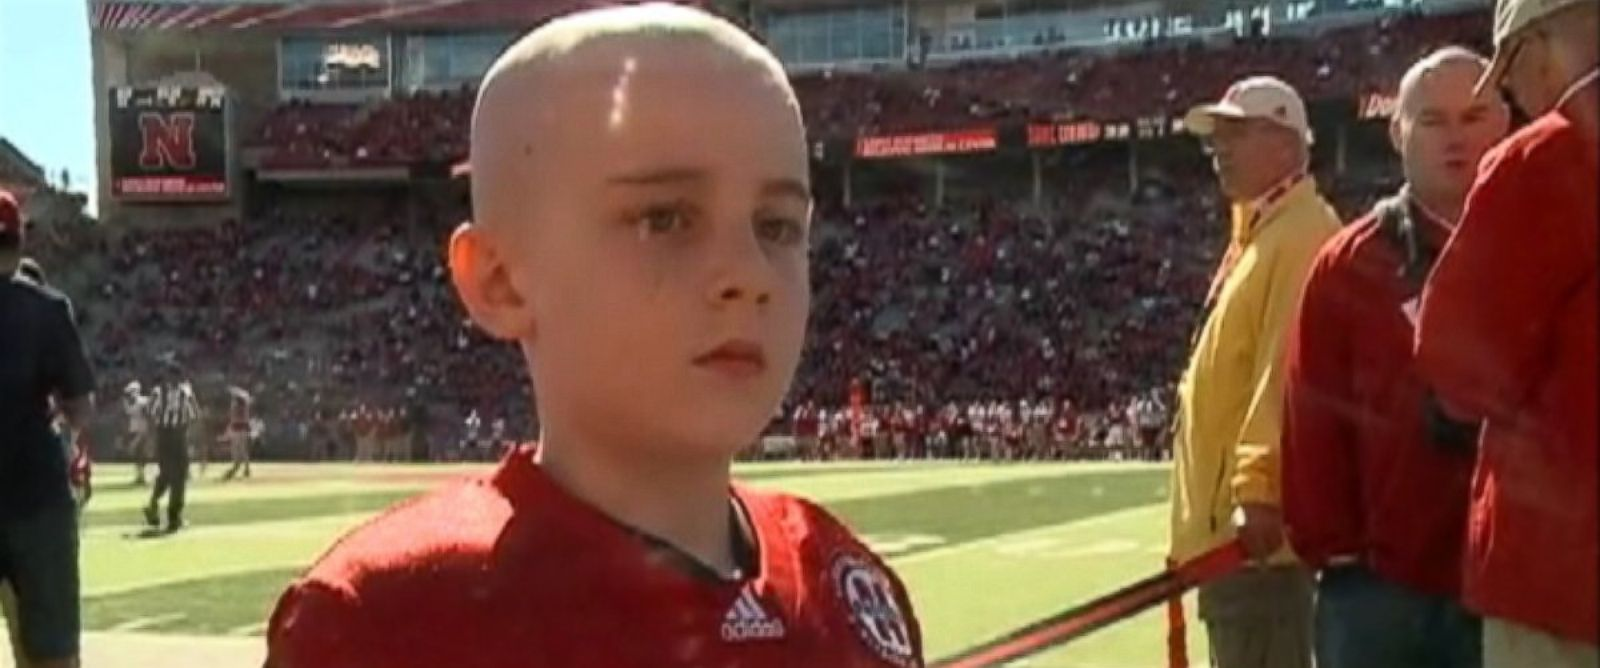 PHOTO: Jack Hoffman, 7-year-old cancer patient scores 69-yard touchdown at Nebraska Spring Game.